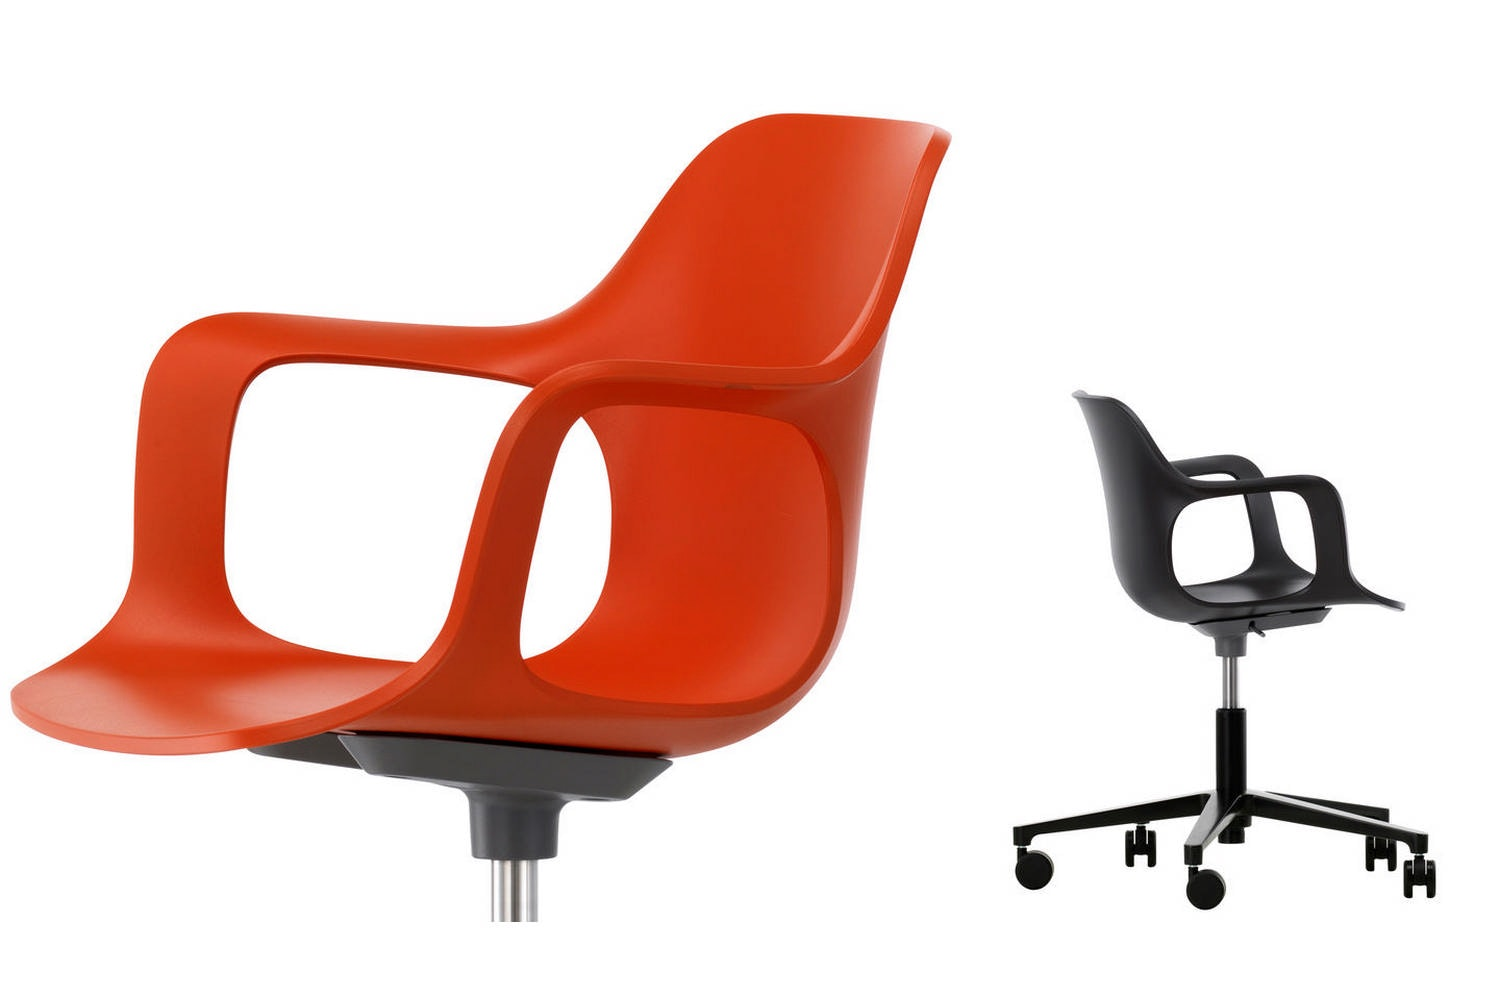 HAL Chair with Arms Studio by Jasper Morrison for Vitra